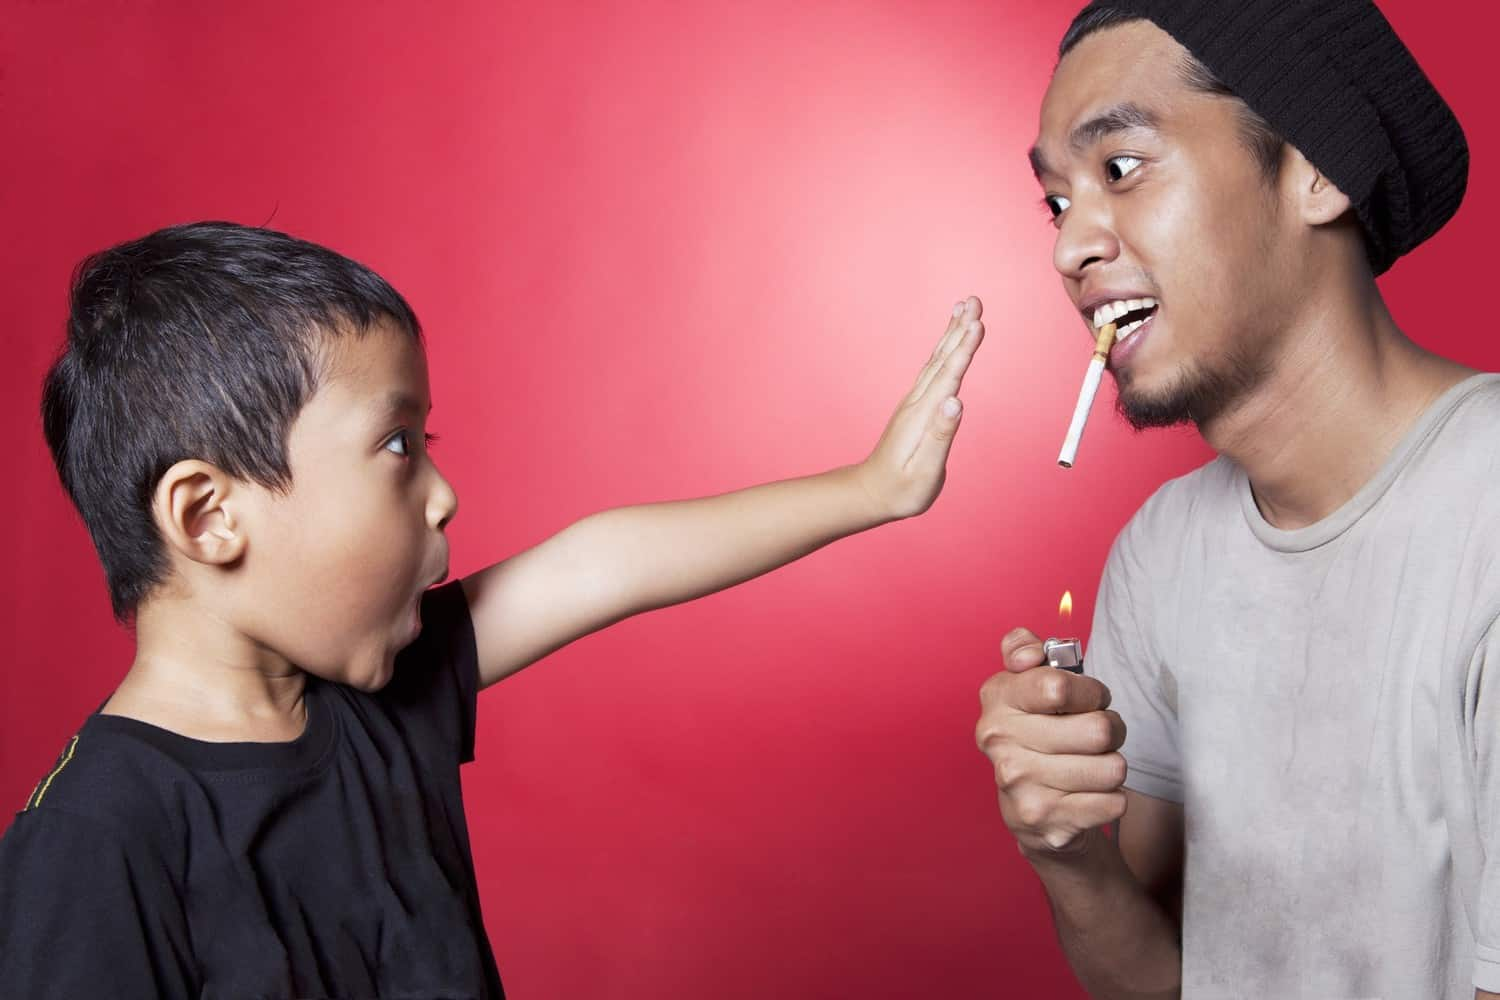 A child saying no to smoking.